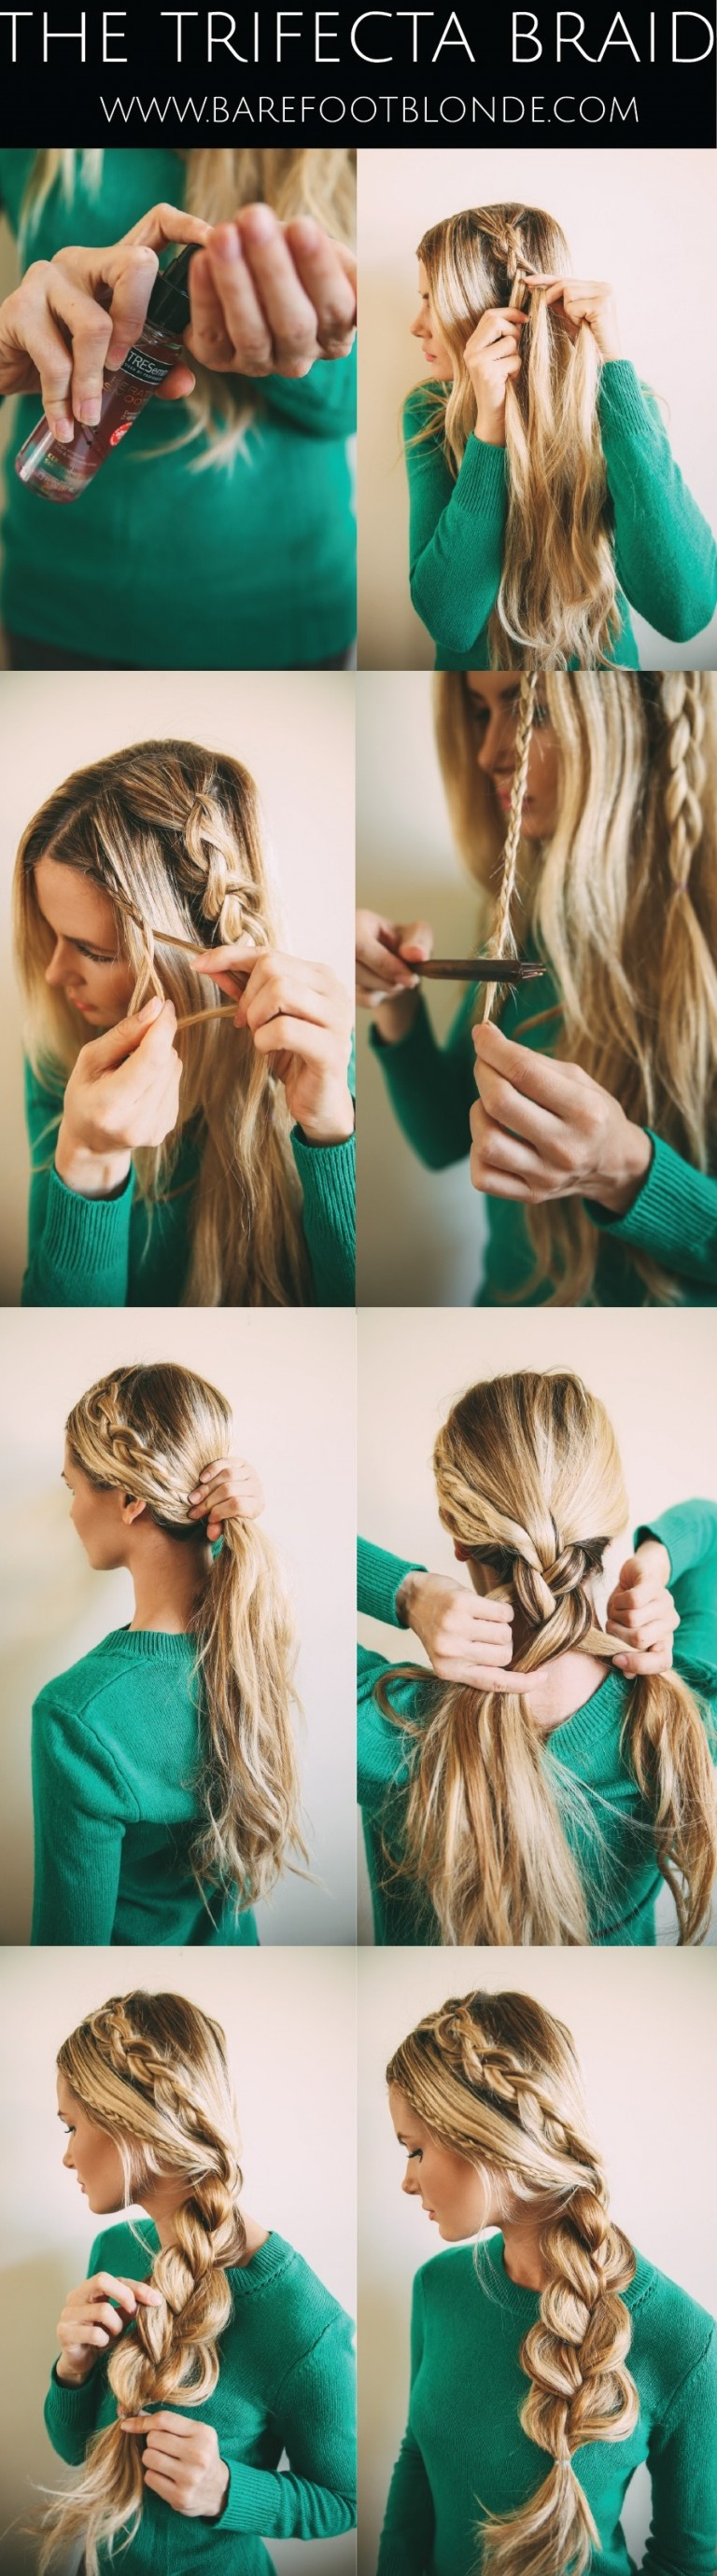 Boho-chic braid hairstyle